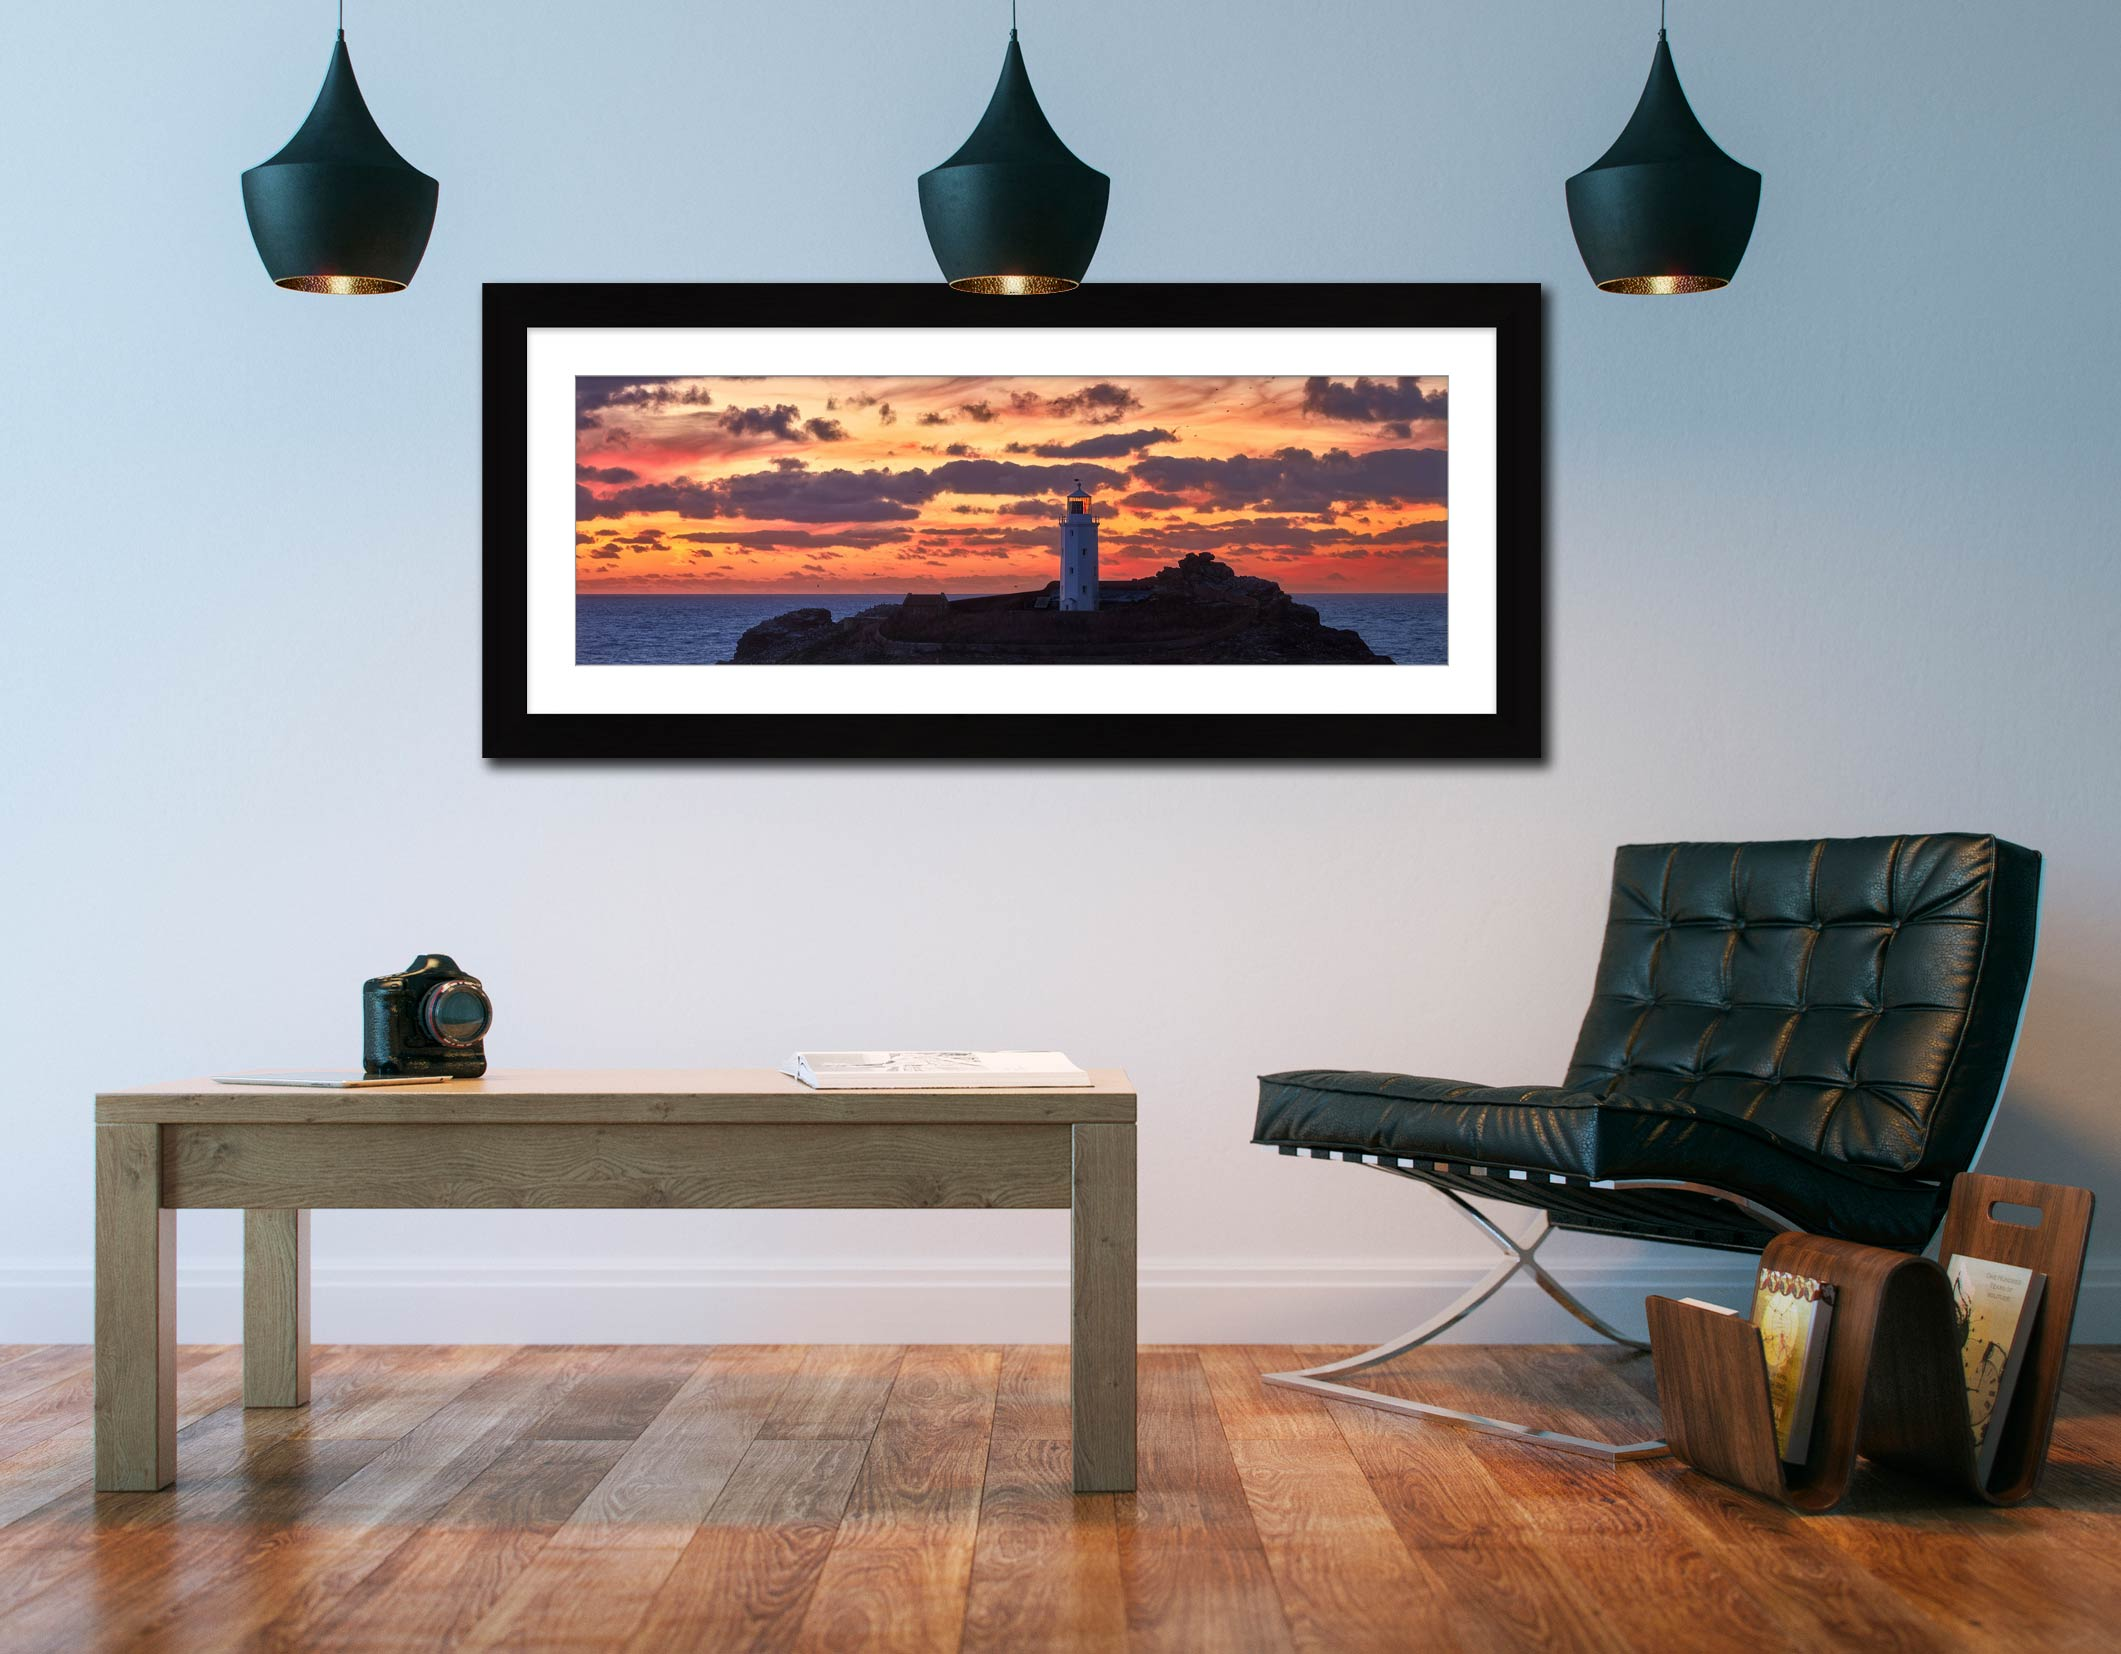 Painted Skies of Dusk at Godrevy - Framed Print with Mount on Wall